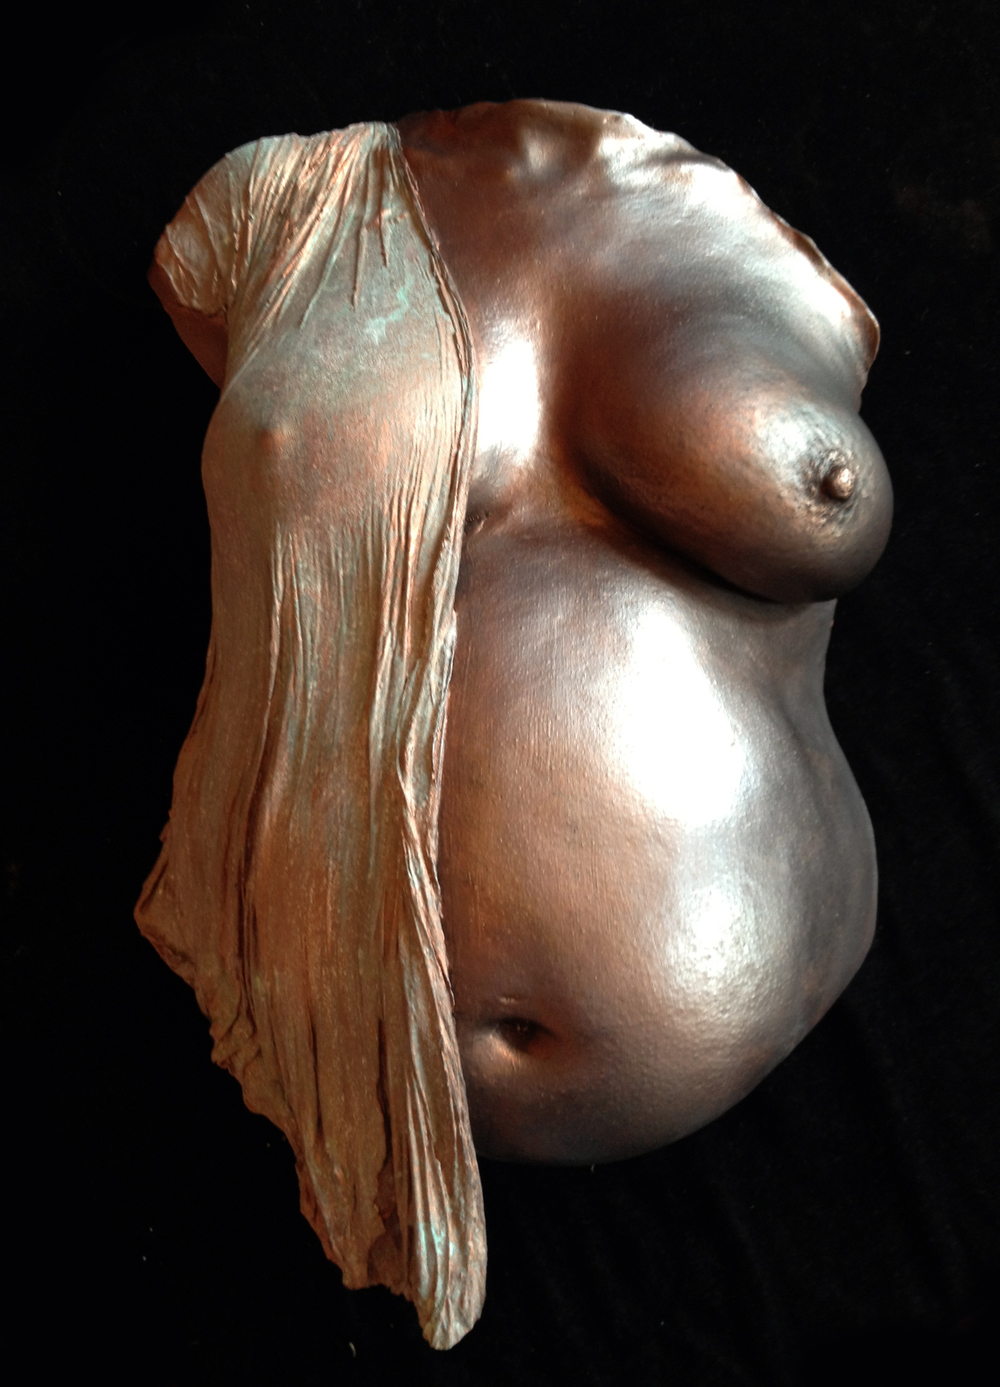 Belly cast with cast cloth, made collaboratively with Sharron Mundy on one of our advanced lifecasting training workshops.